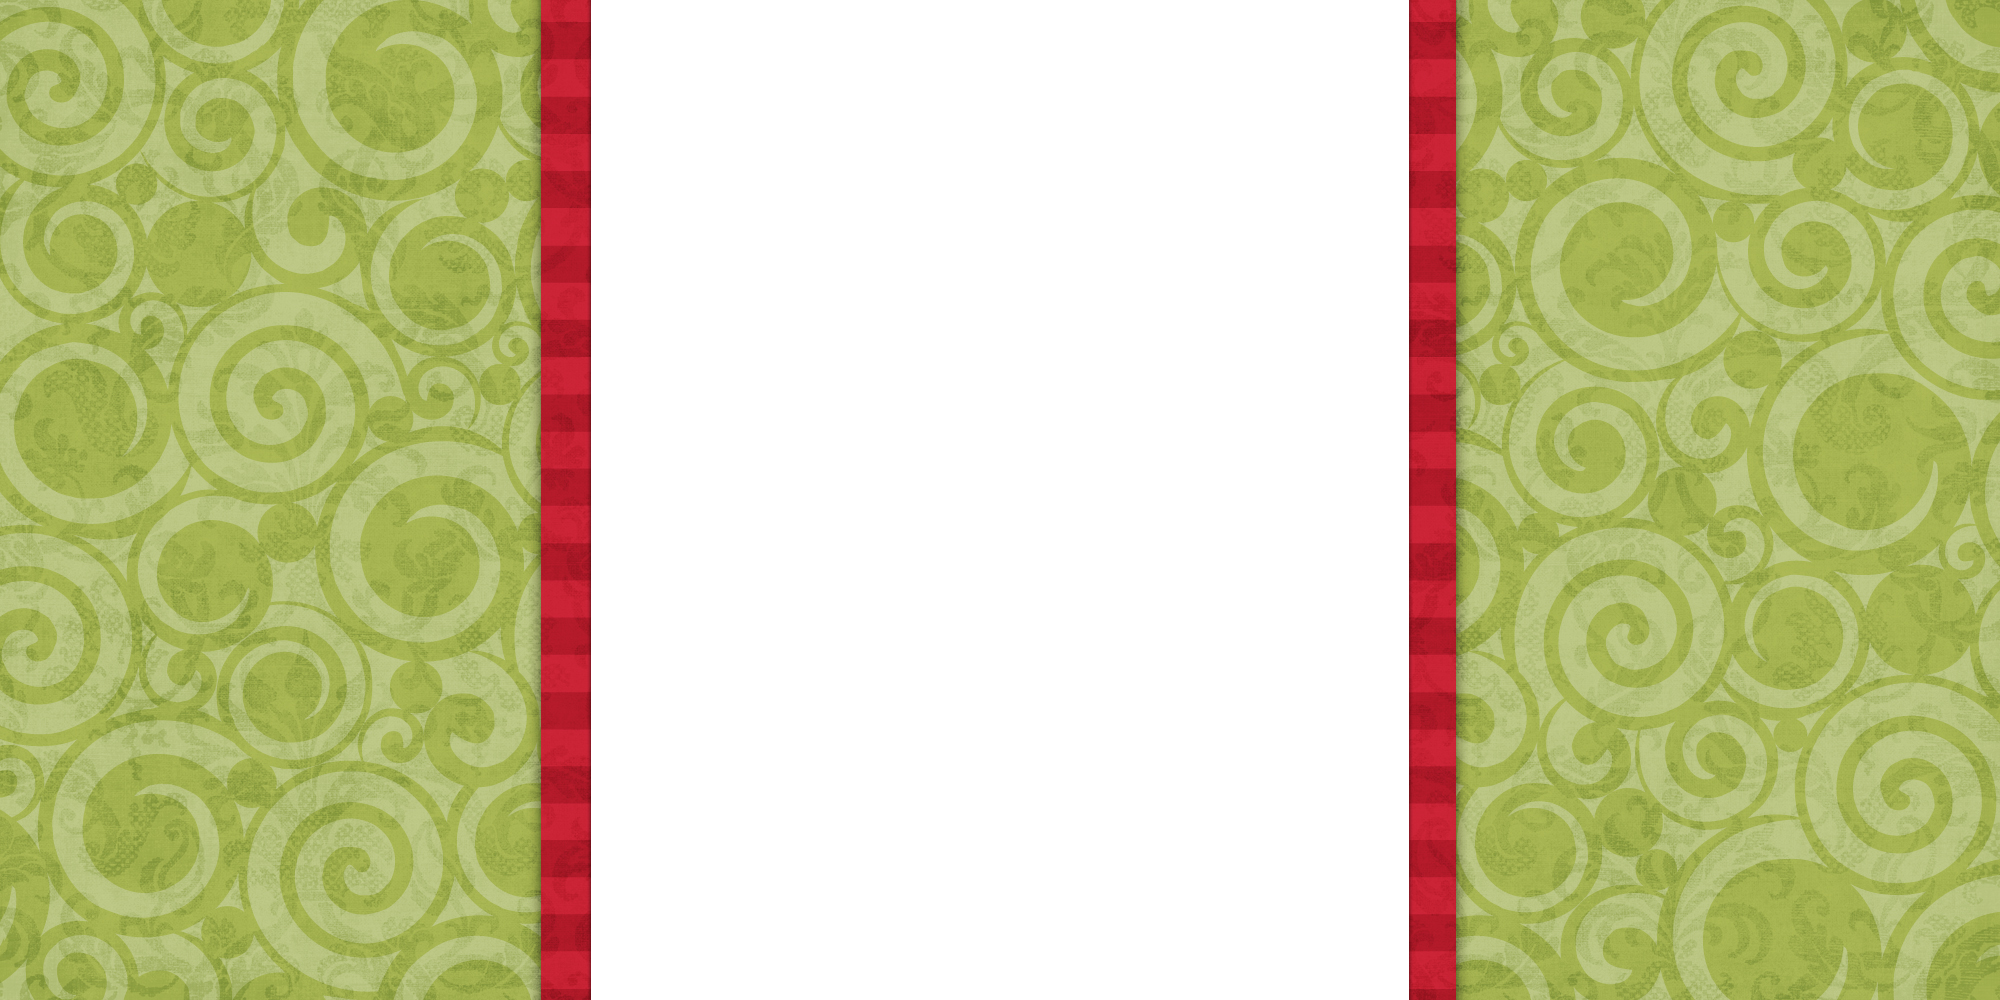 Free christmas banner blogger banner the cutest blog on the block dash away all free christmas blog background layout template green swirls pronofoot35fo Gallery